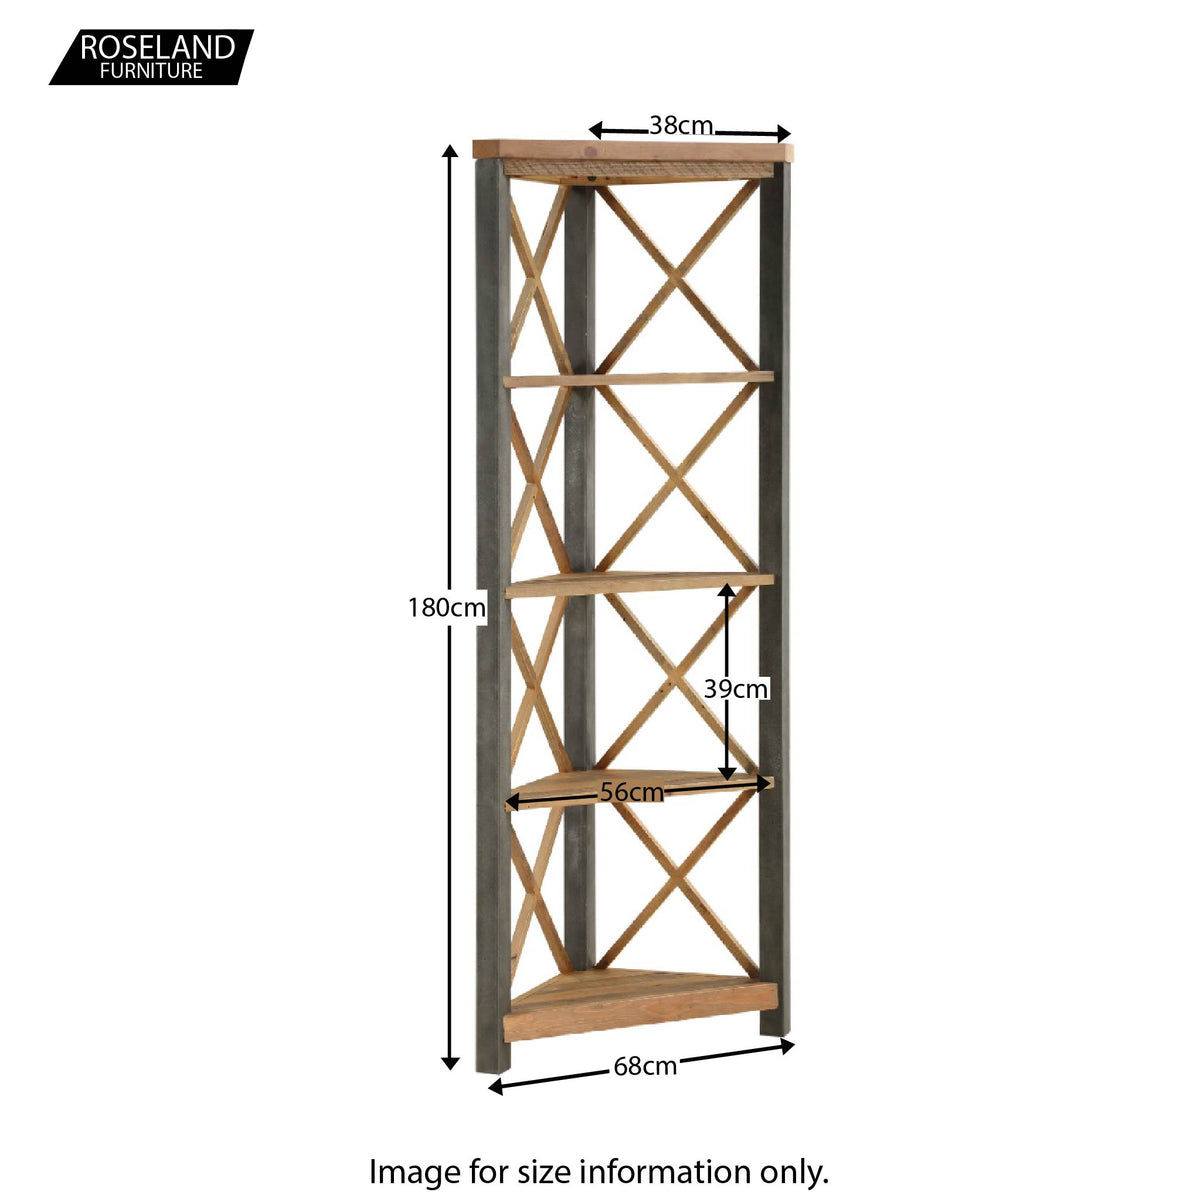 Dimensions for Urban Elegance Reclaimed Wood Large Corner Bookcase 180 x 68 x 38 cm